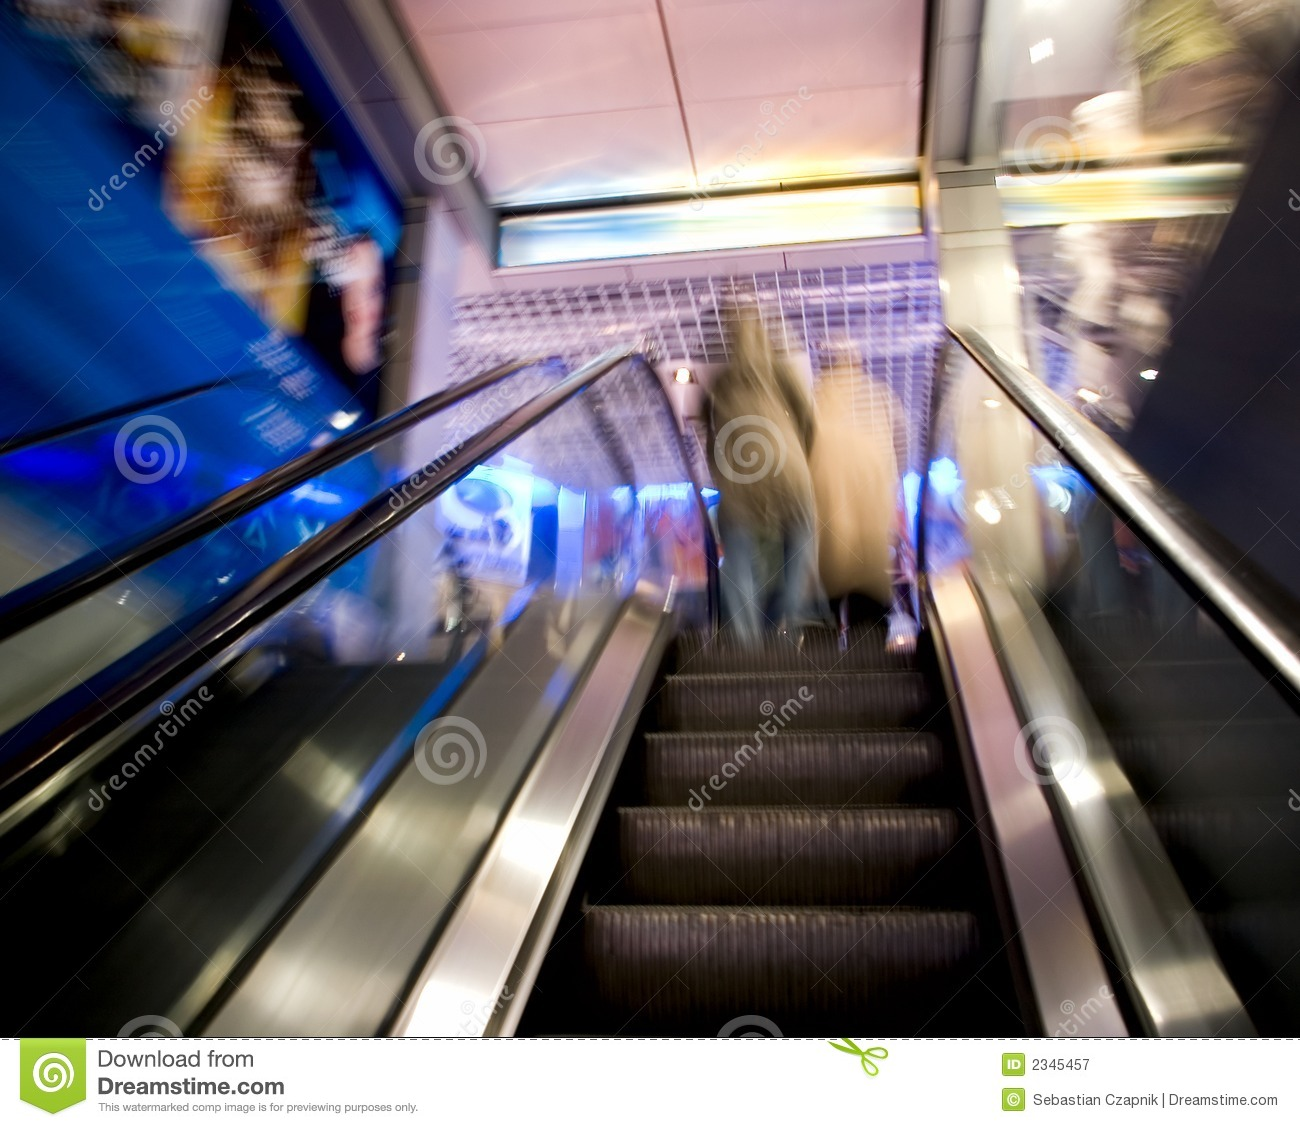 Escalator blur.